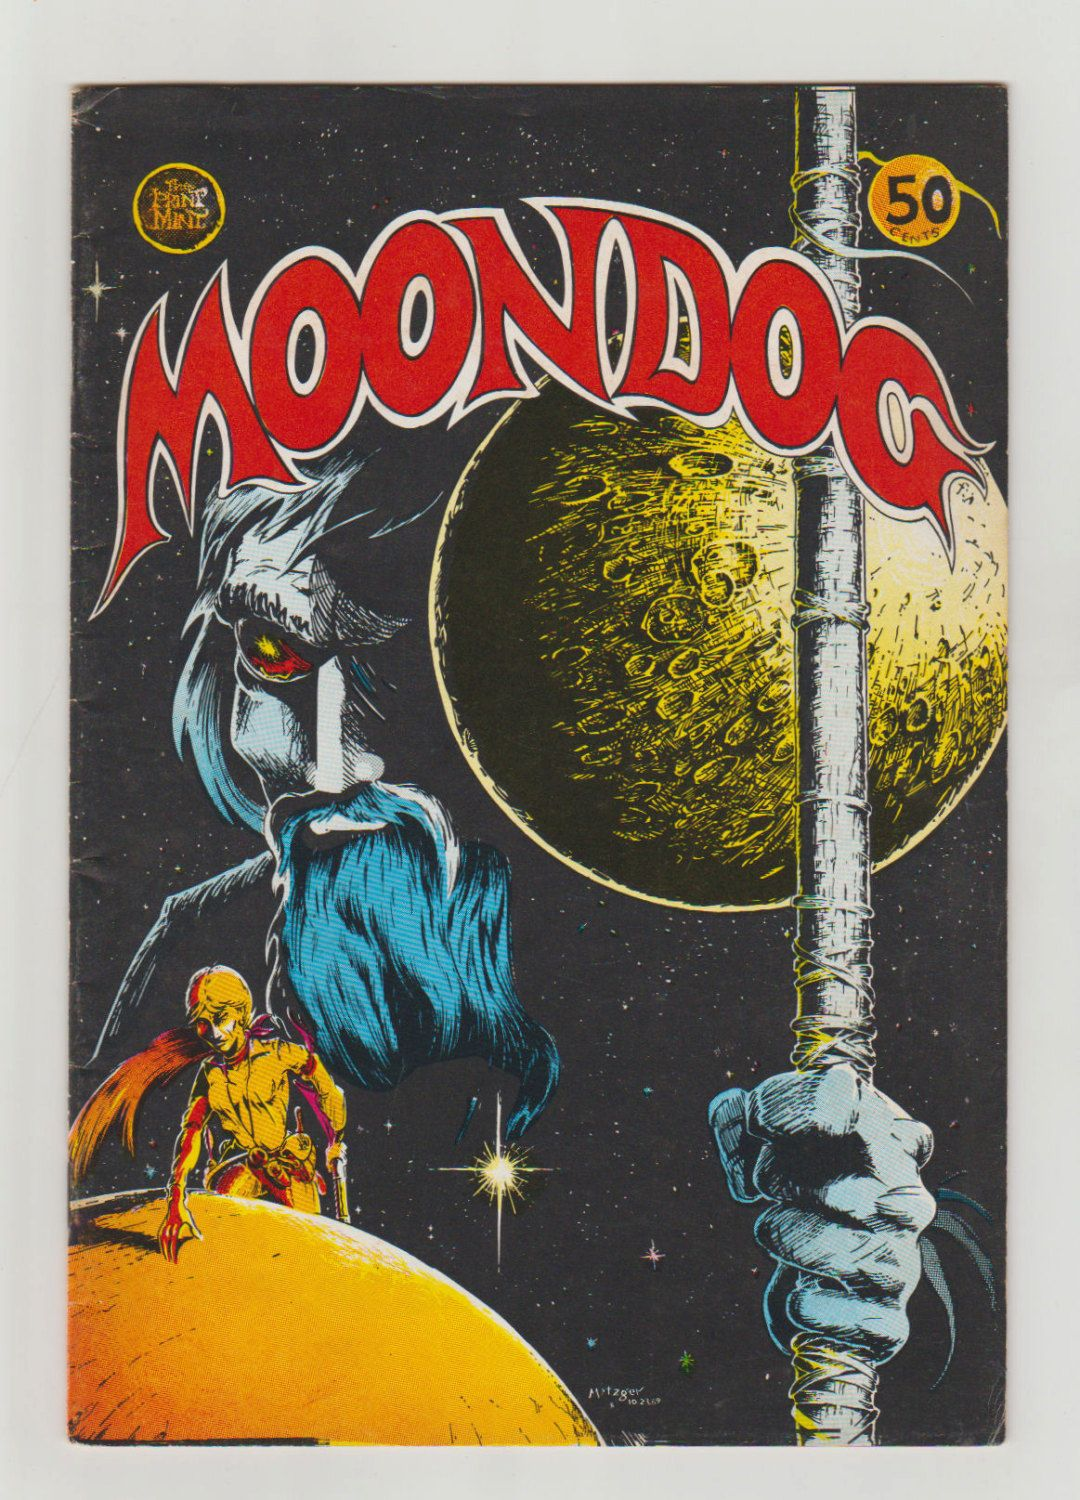 Moondog; Vol 1, 1, Bronze Age Comic Book. FN. March 1970. Print Mint. #moondog #georgemetzger #comicsforsale